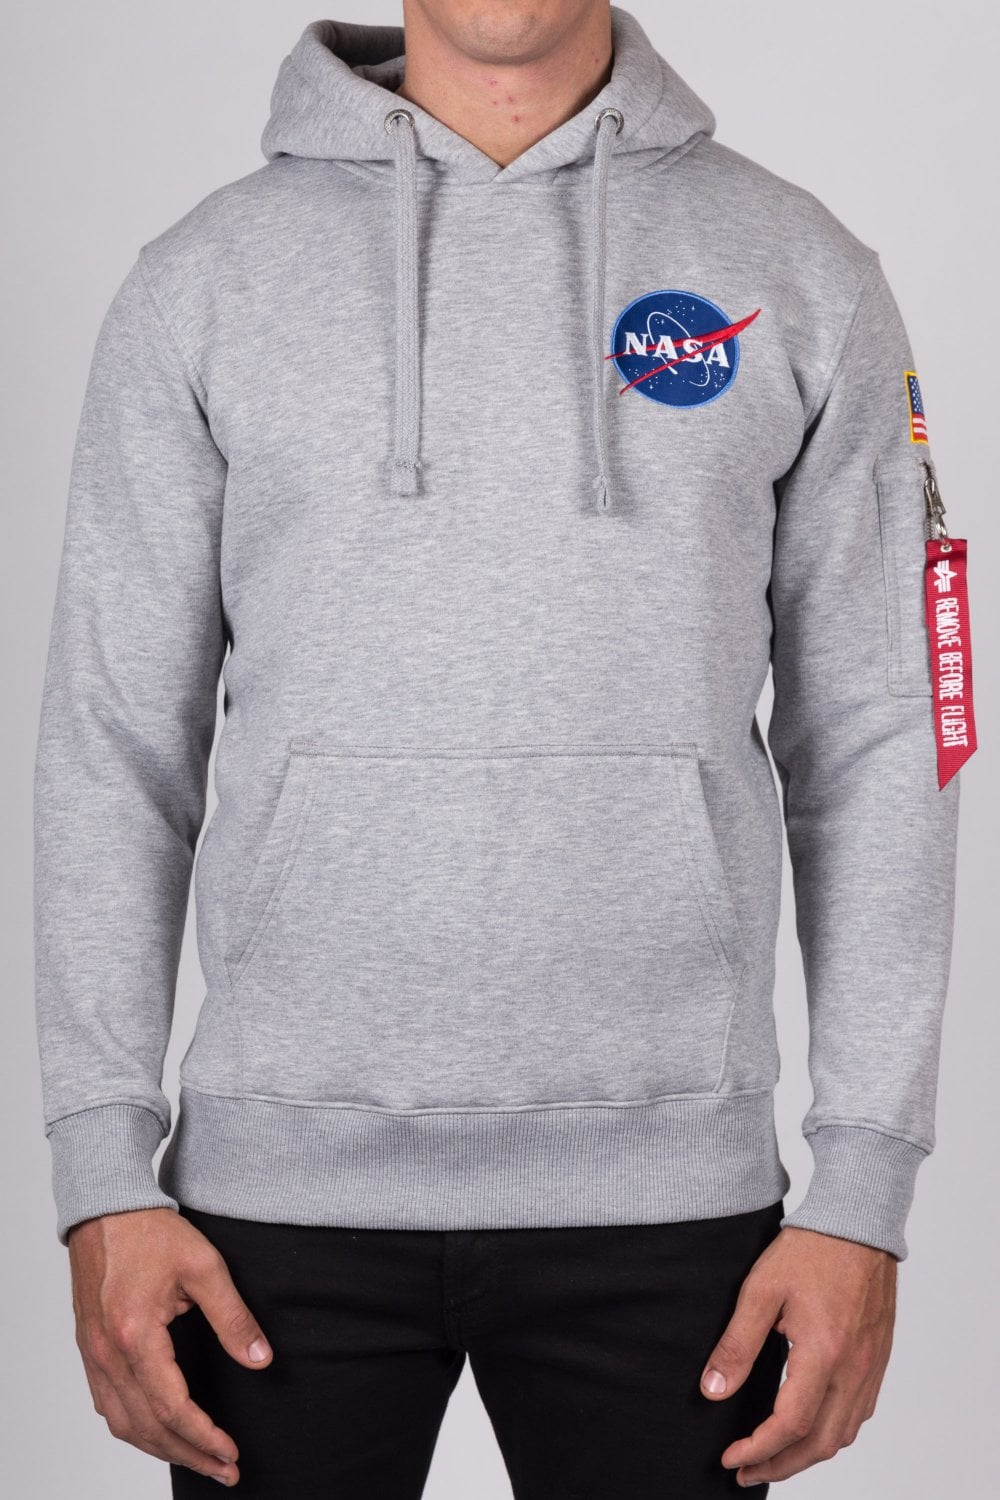 5de2fa192b Alpha Industries Space Shuttle Hoodie Grey - Men's Clothing from ...